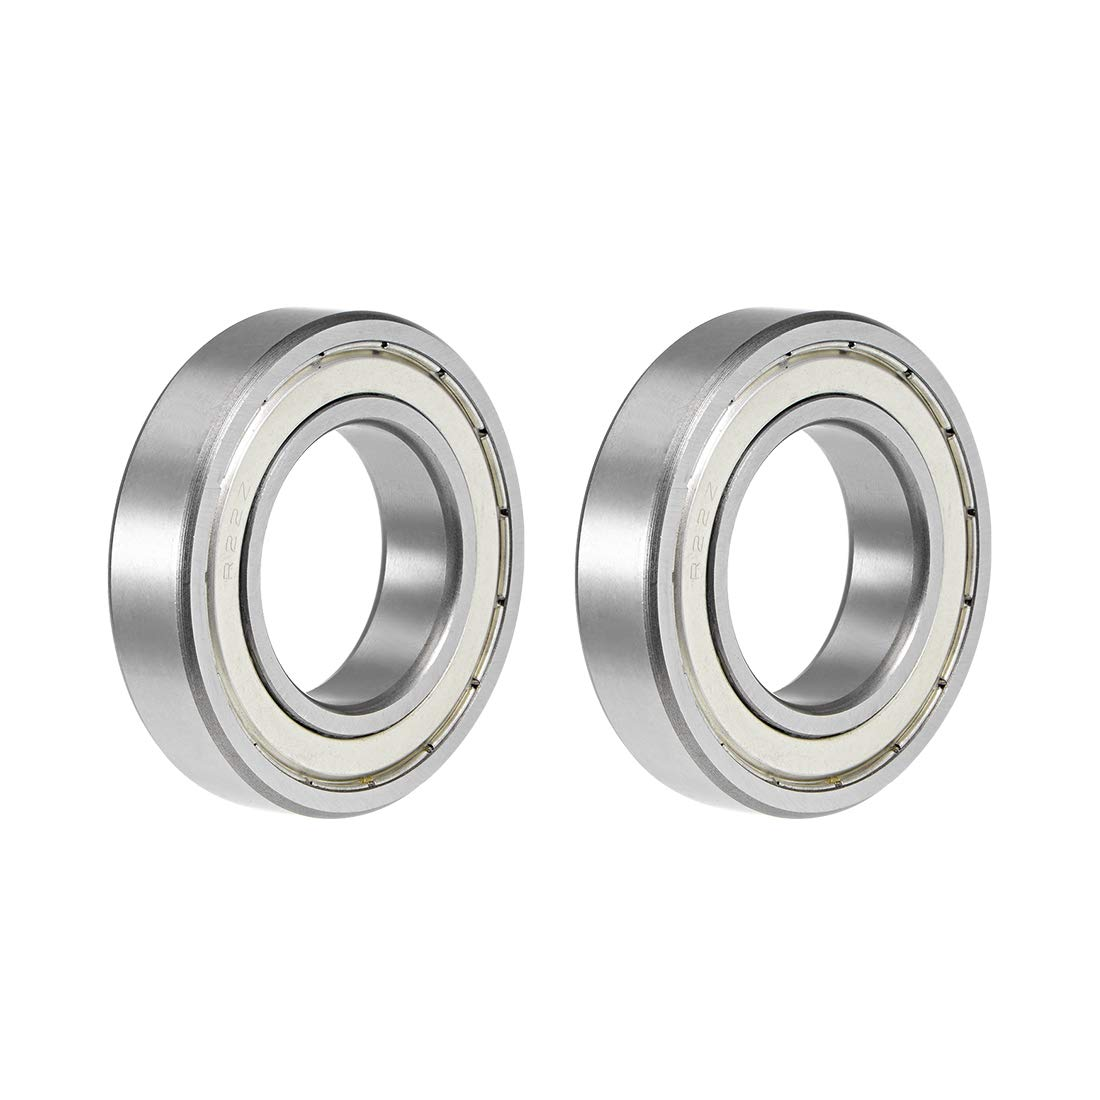 uxcell R22ZZ Deep Groove Ball Bearing 1-3//8x2-1//2x9//16 Double Shielded Chrome Steel Bearings 2-Pack